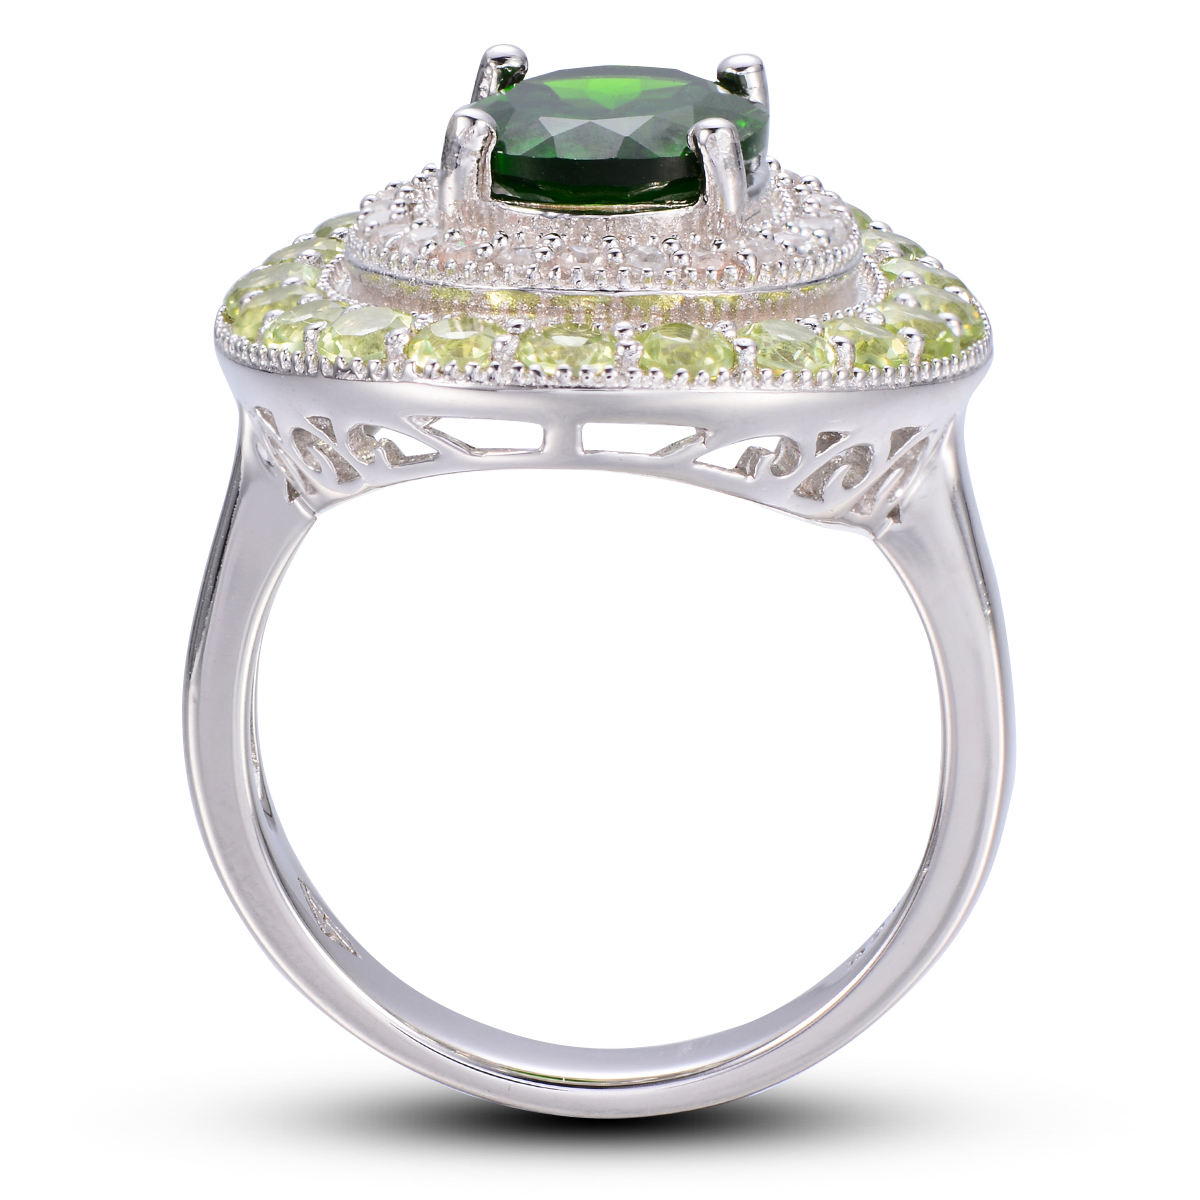 HUTANG 4.406ct Natural Chrome Diopside & Peridot Solid 925 Sterling Silver Ring Gemstone Fine Jewelry Women's цена и фото